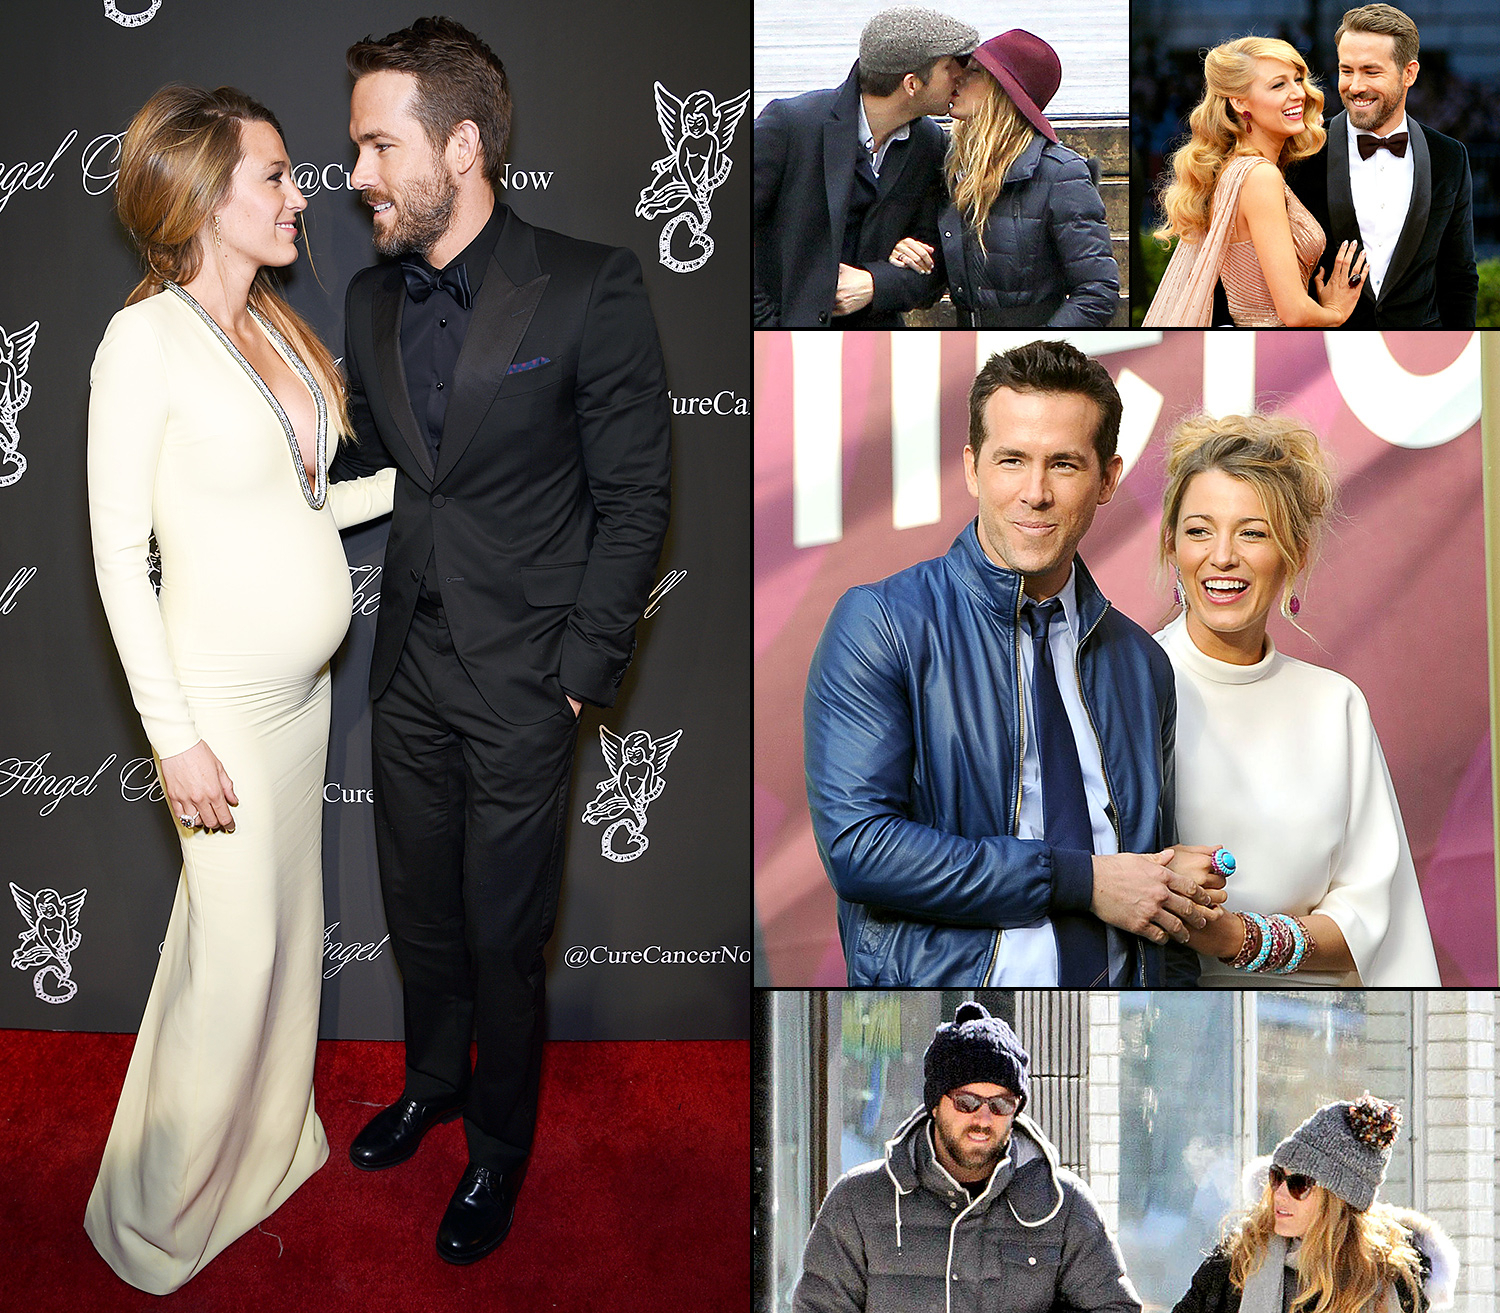 "These days, Blake Lively and Ryan Reynolds are royalty as far as Hollywood couples go, but the Detective Pikachu star and the Age of Adaline actress were once just two friends out on a double date — with other people! As Reynolds told Entertainment Weekly 's SiriusXM show in February 2016: ""We went on a double date . She was on a date with another guy, and I was on a date with another girl — and that was, like, the most awkward date for the respective parties because we were just like fireworks coming across."""